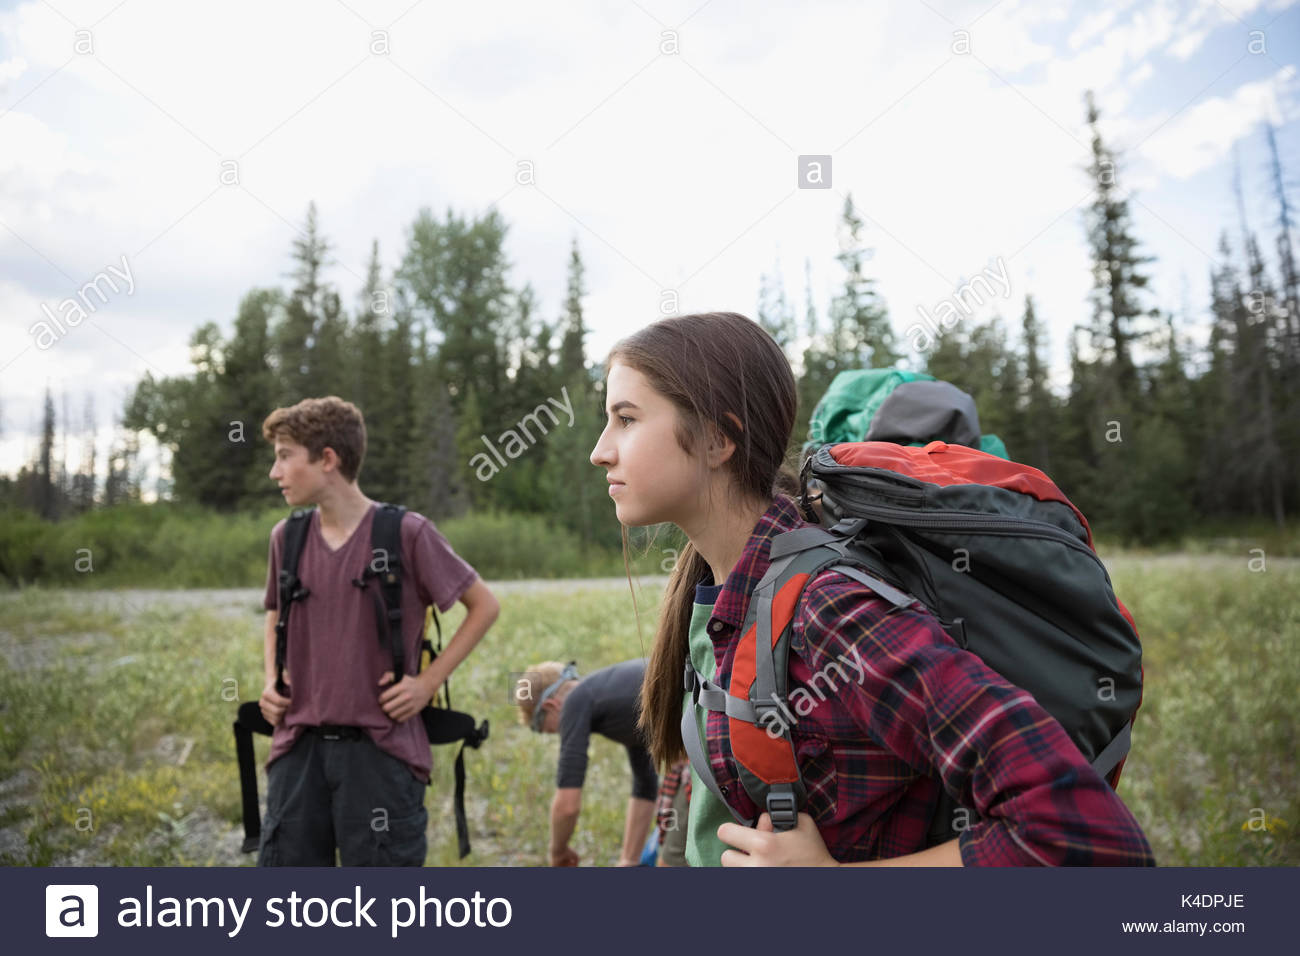 Teenage outdoor school students with backpacks hiking in woods - Stock Image